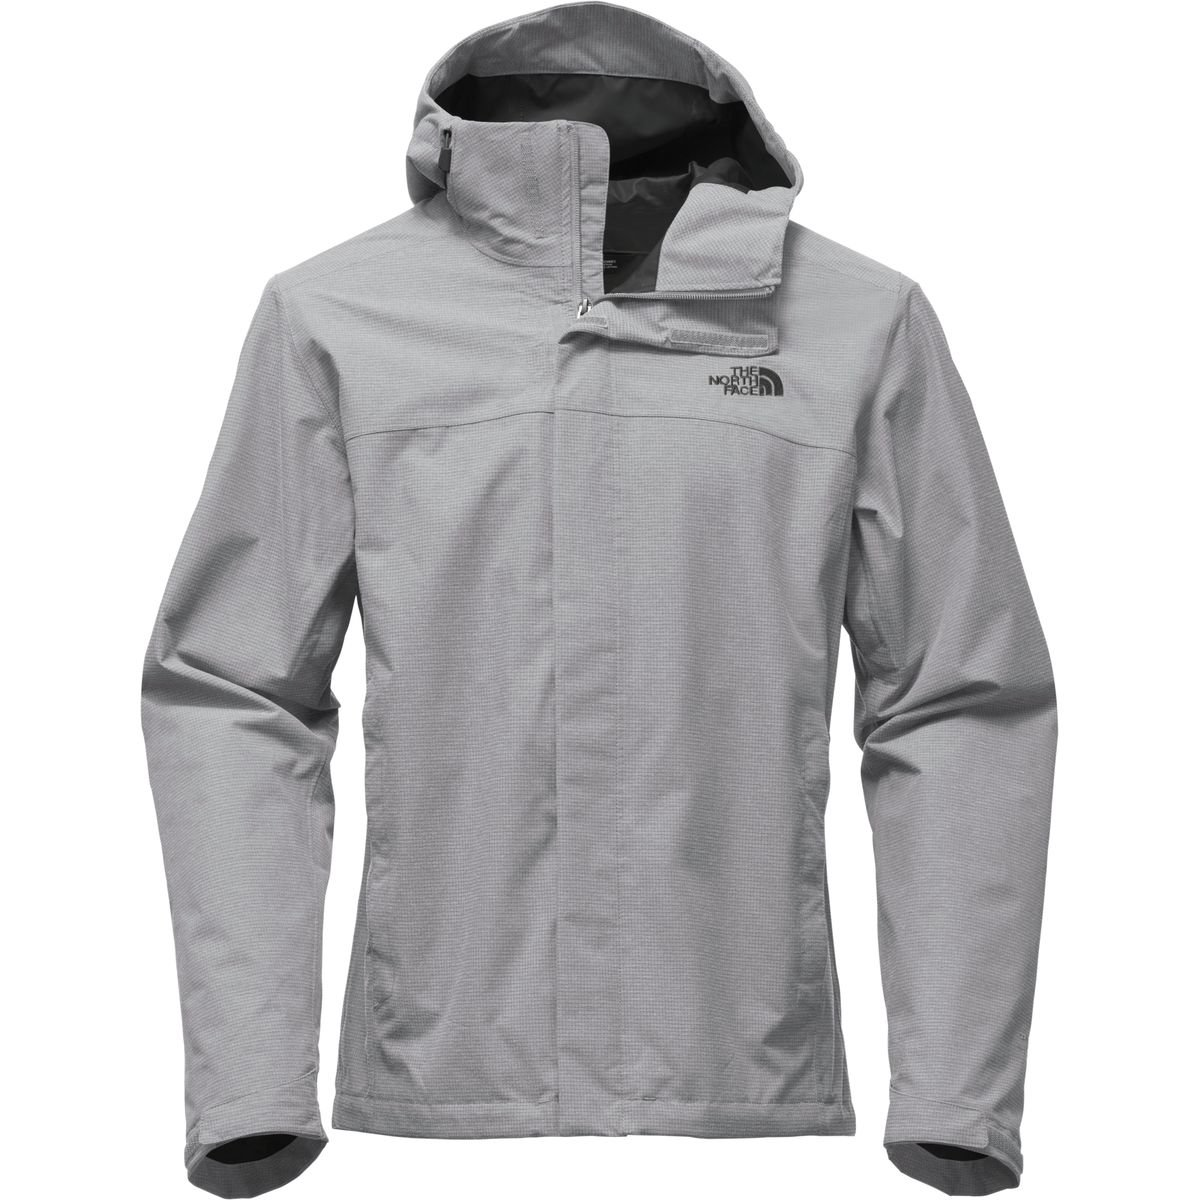 The North Face Men's Venture 2 Jacket Tall - Mid Grey Ripstop Heather/Mid Grey Ripstop Heather - L (Past Season) by The North Face